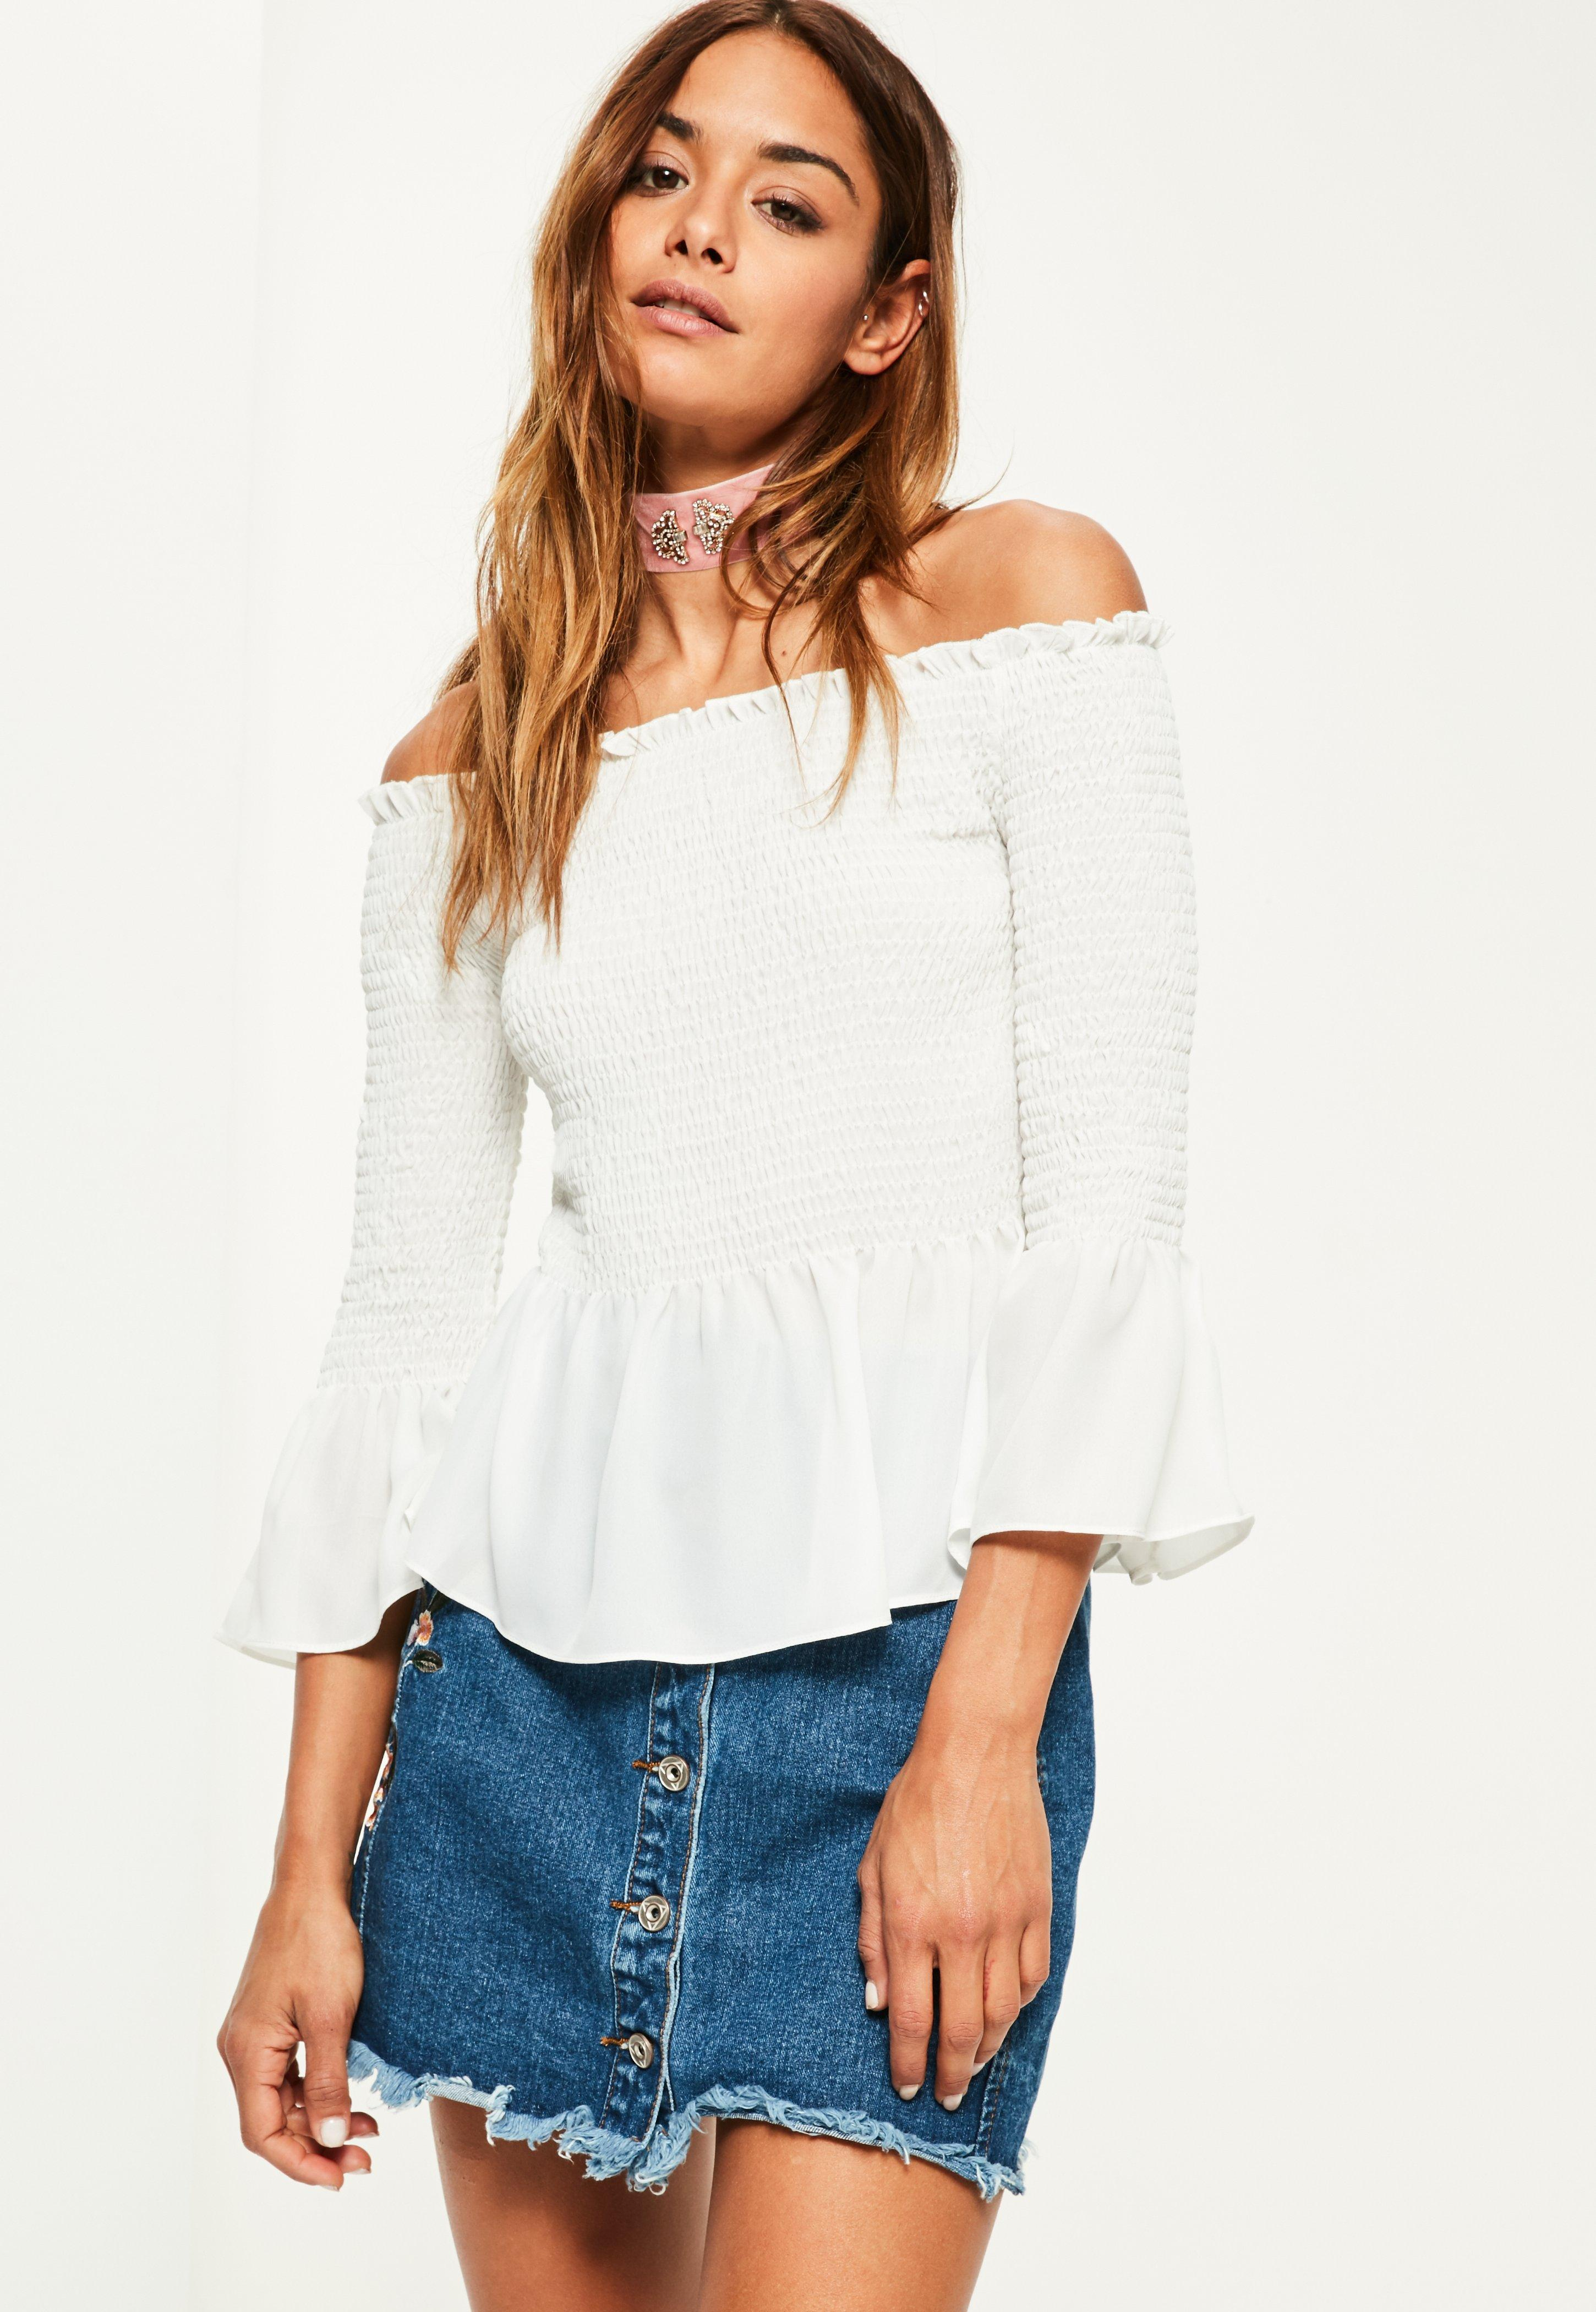 642e1cedea0bd Lyst - Missguided White Shirred Short Sleeve Bardot Frill Blouse in ...